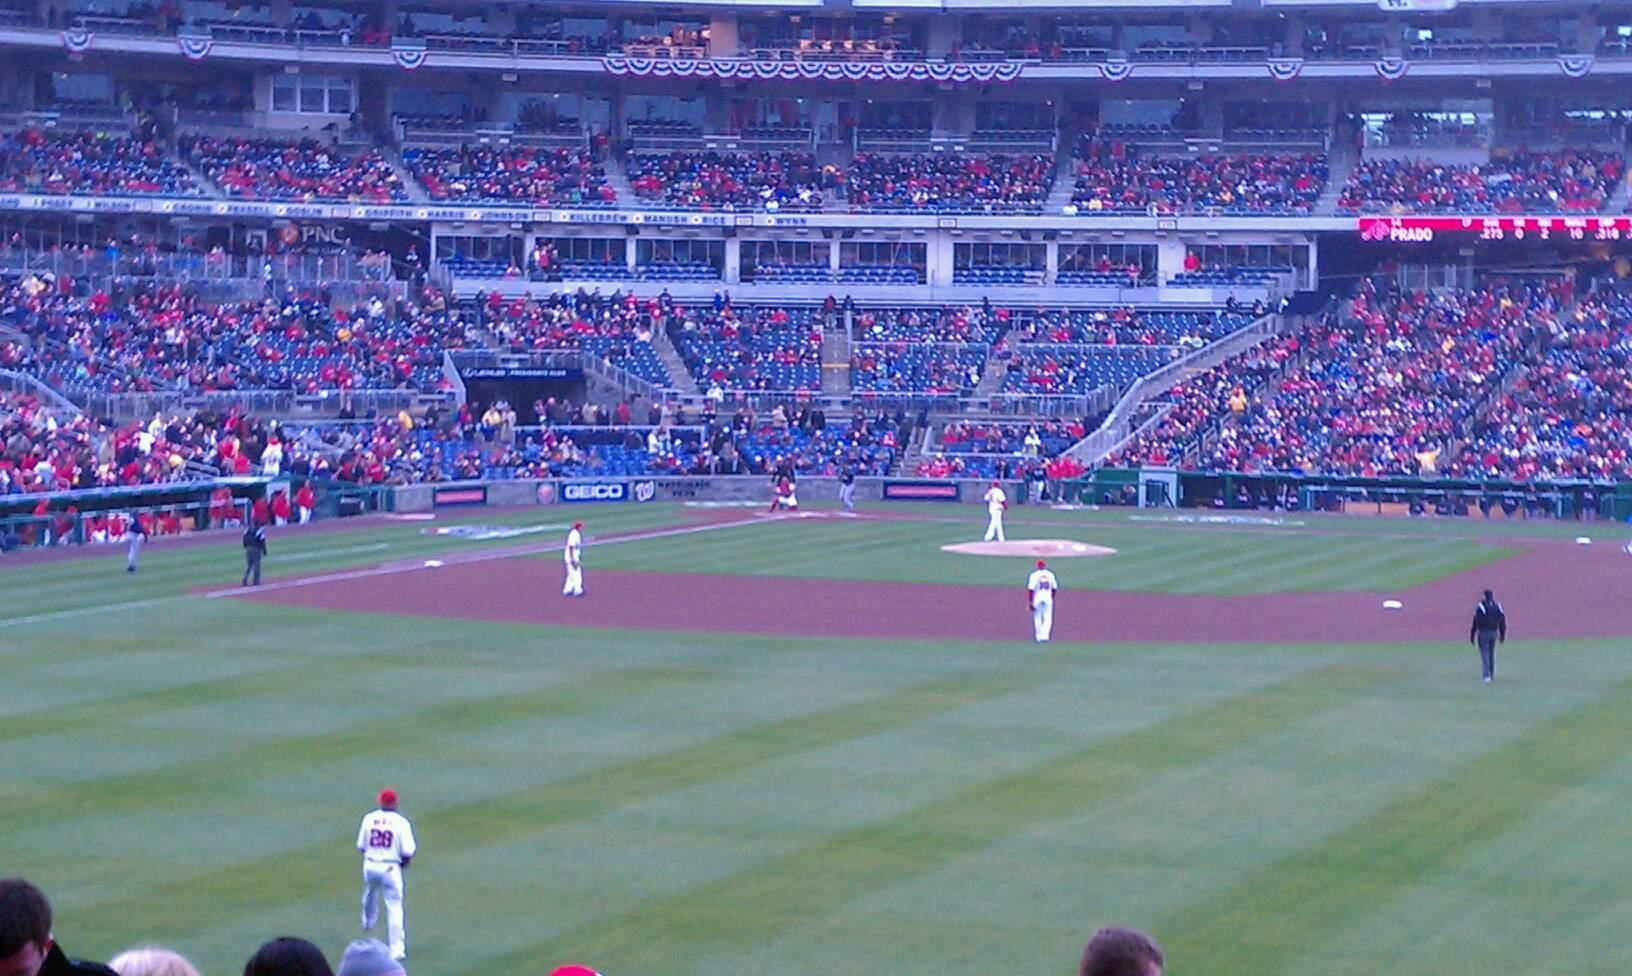 Nationals Park Section 141 Row P Seat 21